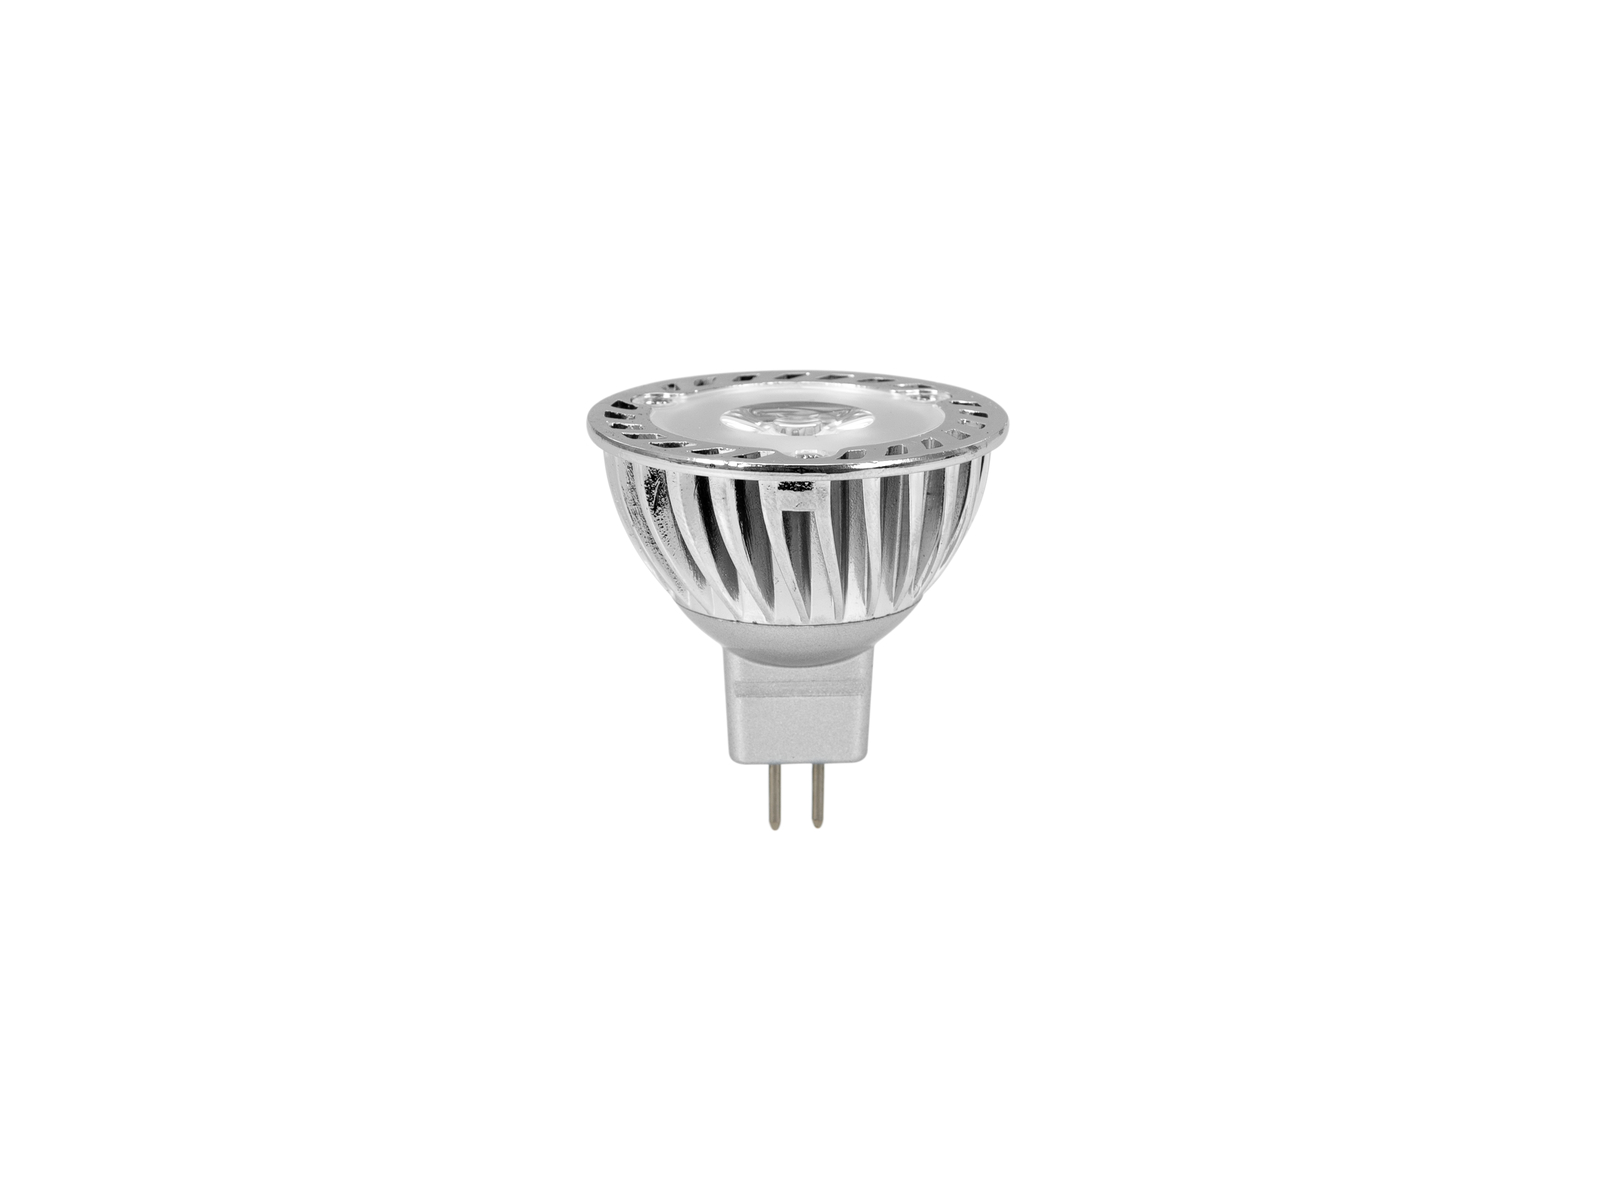 12V MR-16 GU-5.3 Omnilux, 3W LED 3000K